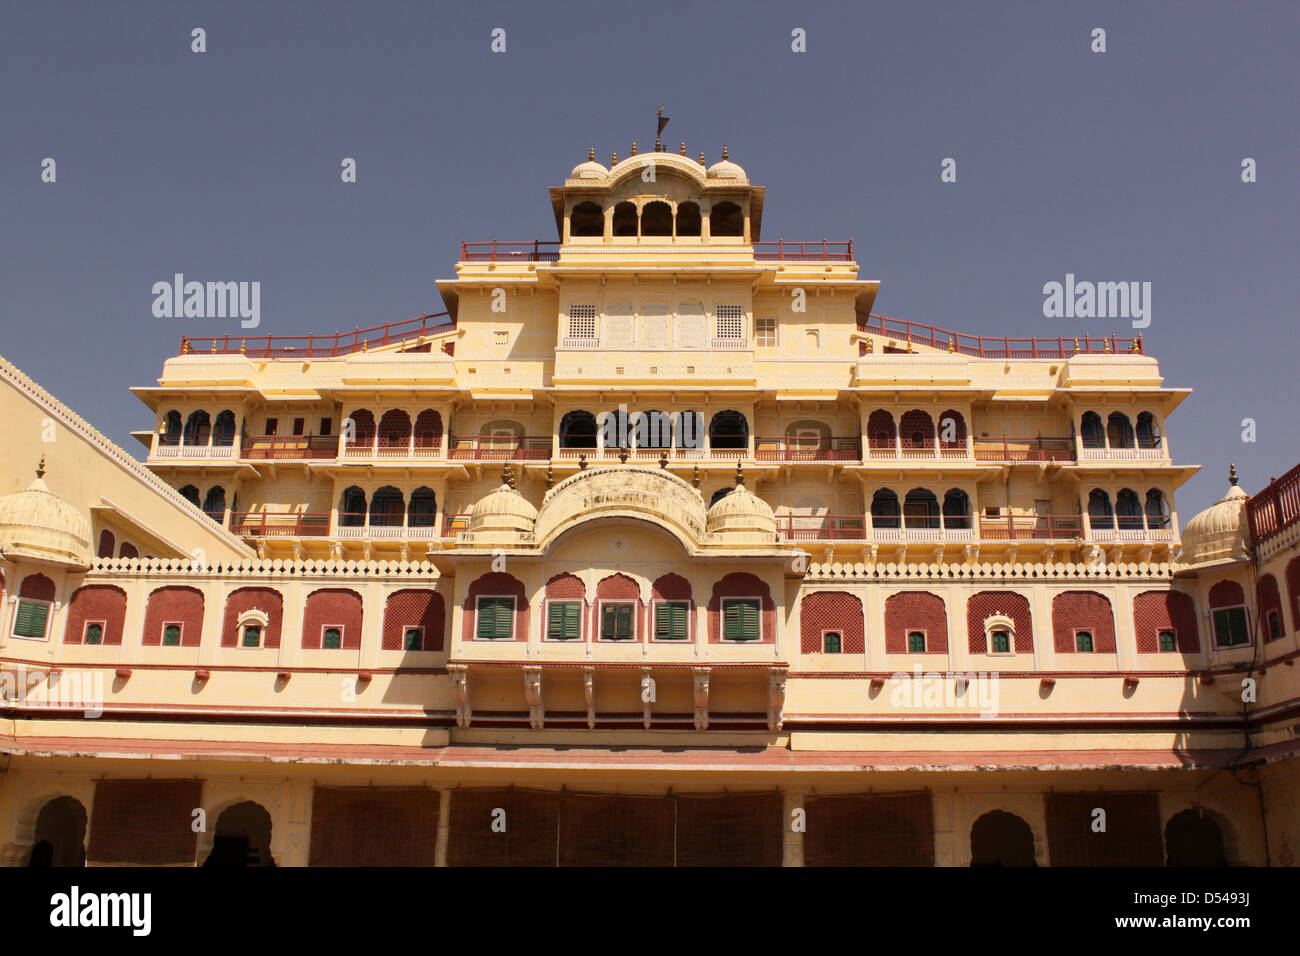 Chandra Mahal City Palace complex Jaipur  Rajasthan state, India Stock Photo